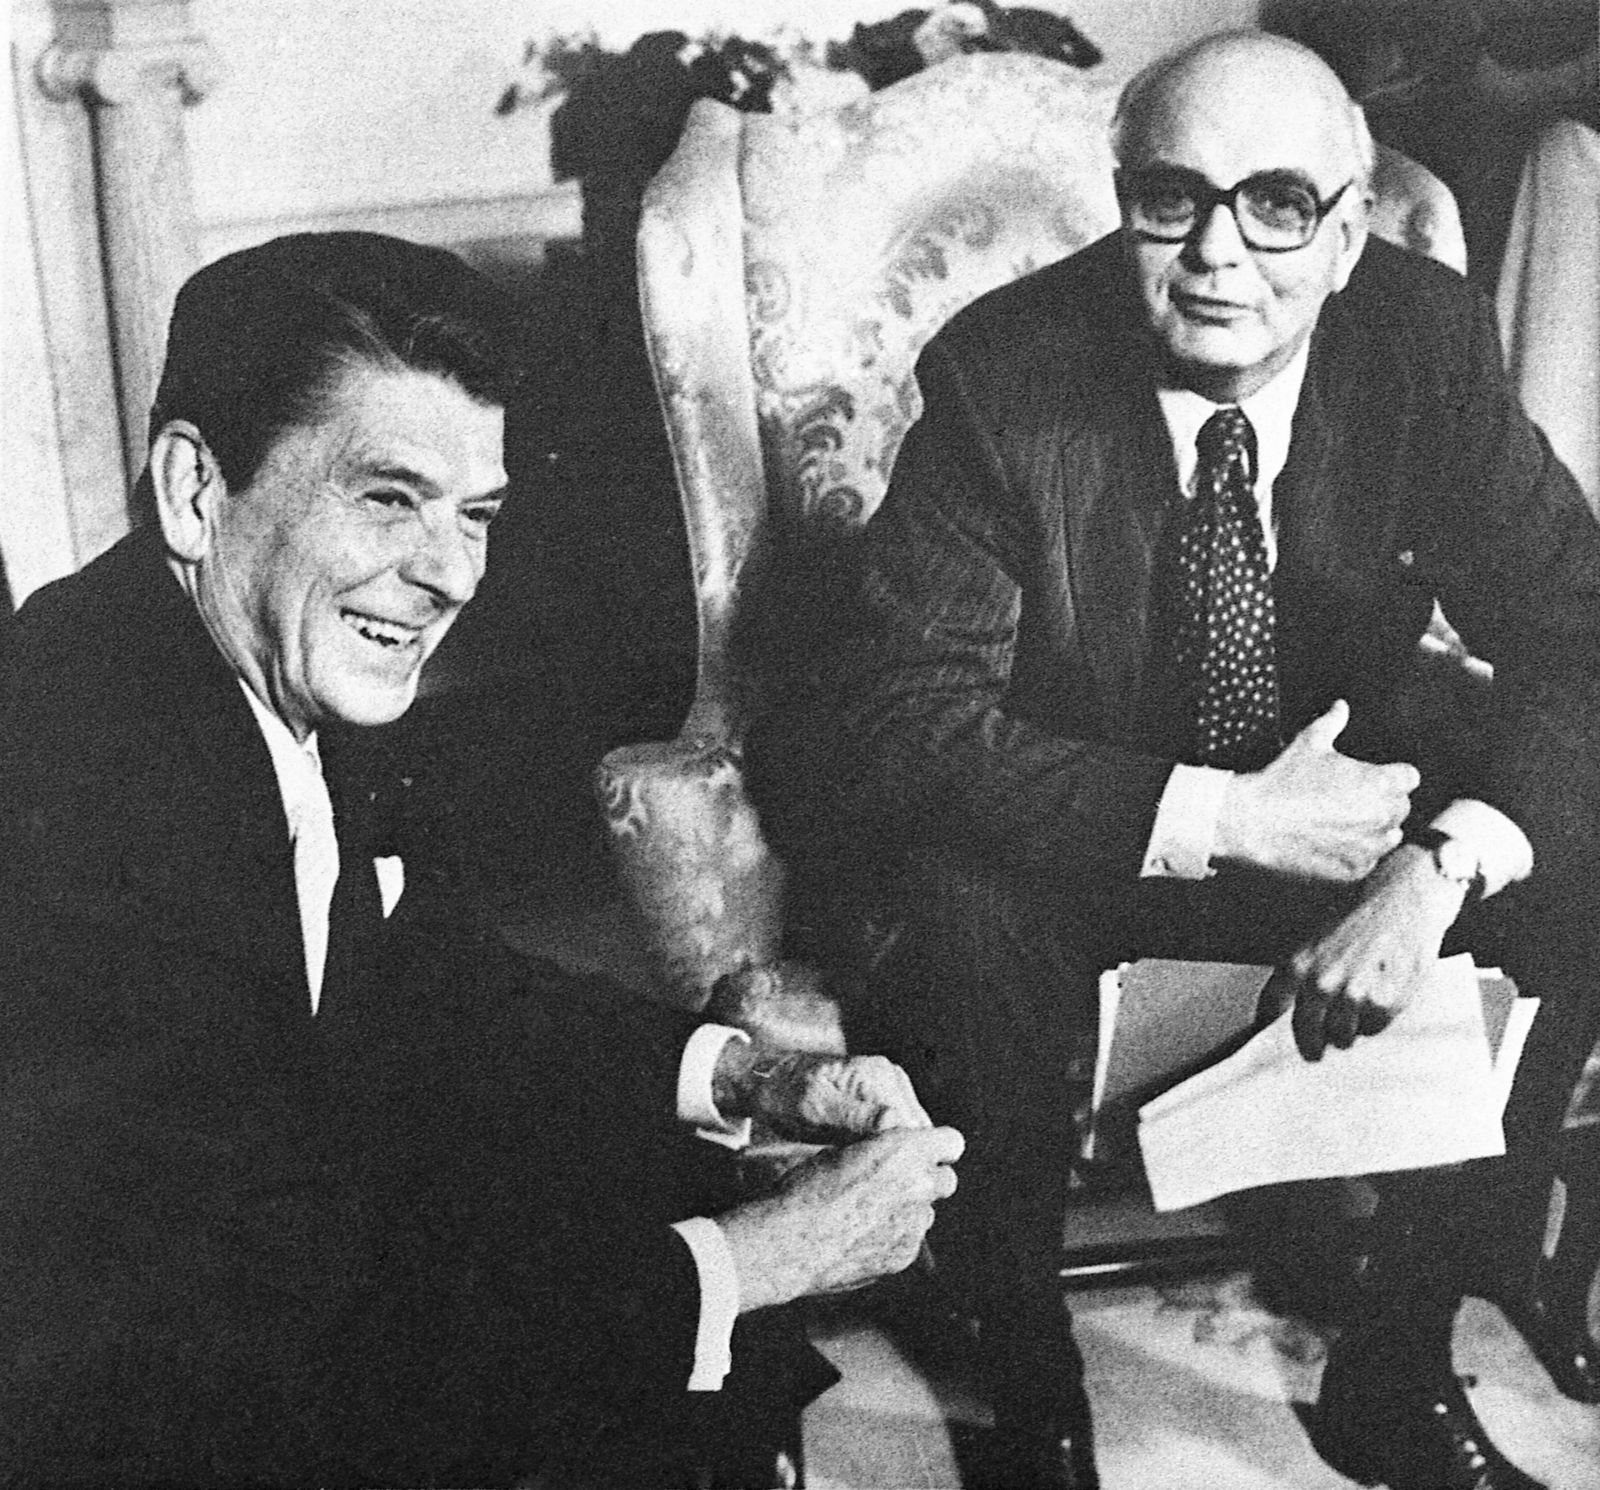 FILE - In this July 16, 1981, file photo Federal Reserve Board chairman Mr. Paul Volcker, right, meets with President Ronald Reagan in the Oval Office in Washington. Volcker, the former Federal Reserve chairman died on Sunday, Dec. 8, 2019, according to his office, He was 92.{ }(AP Photo/J. Scott Applewhite File)